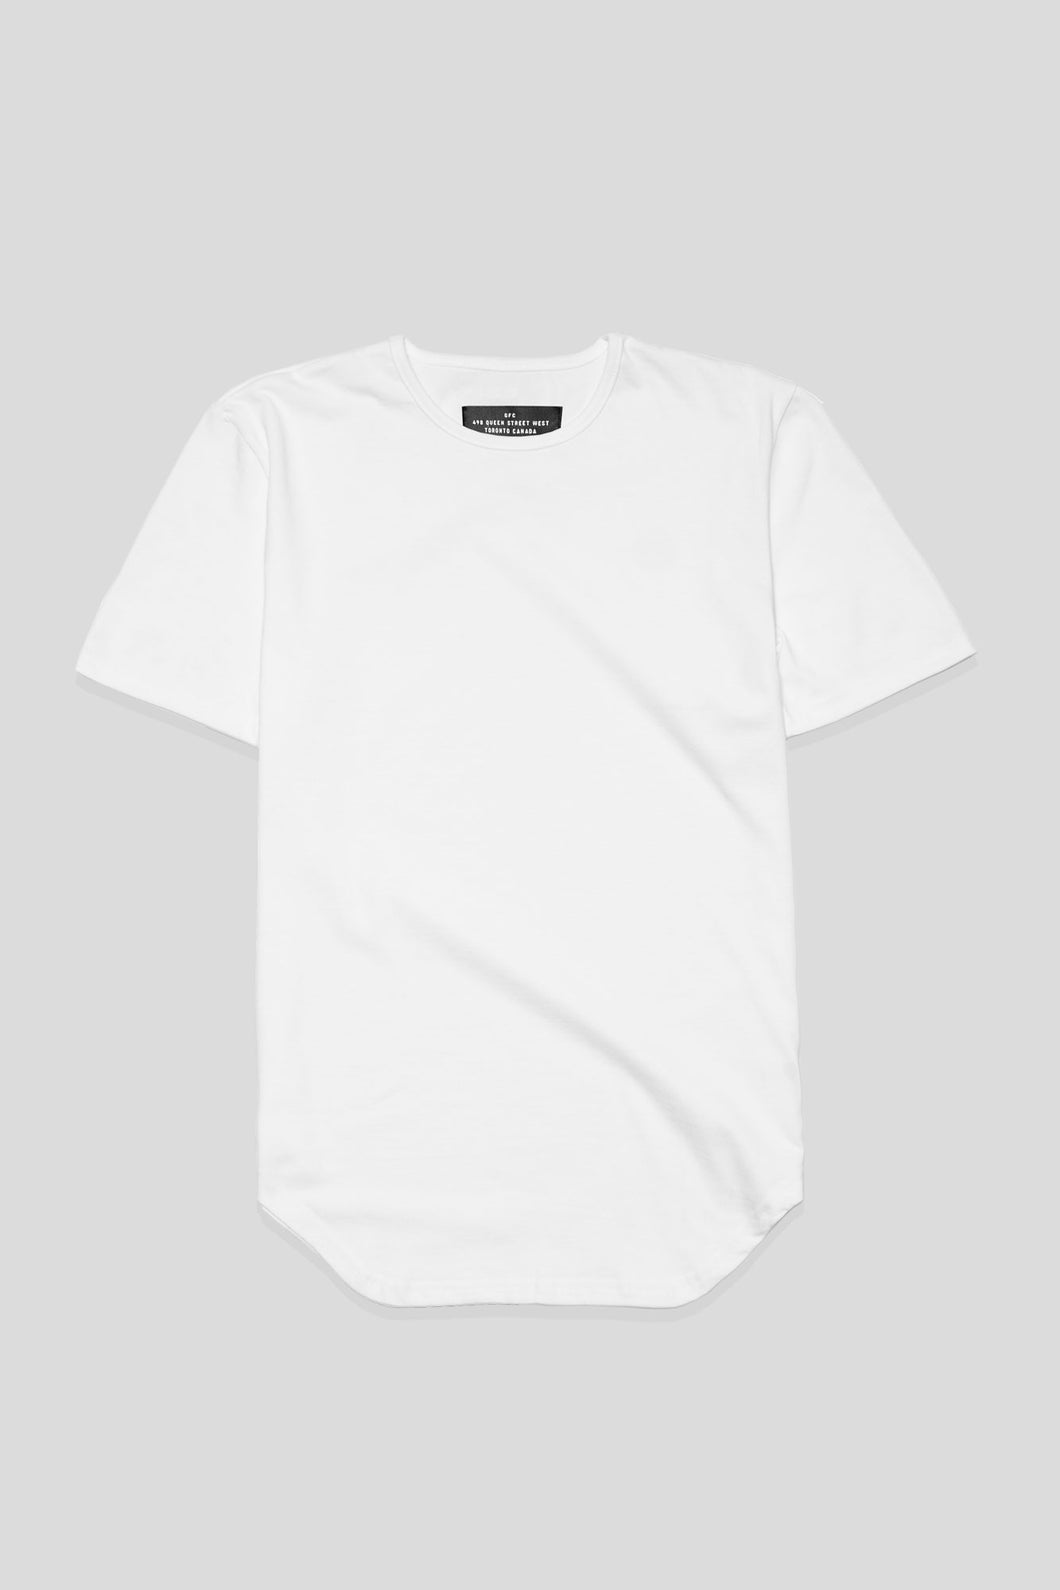 Barebones By GFC - Scoop Tee - White